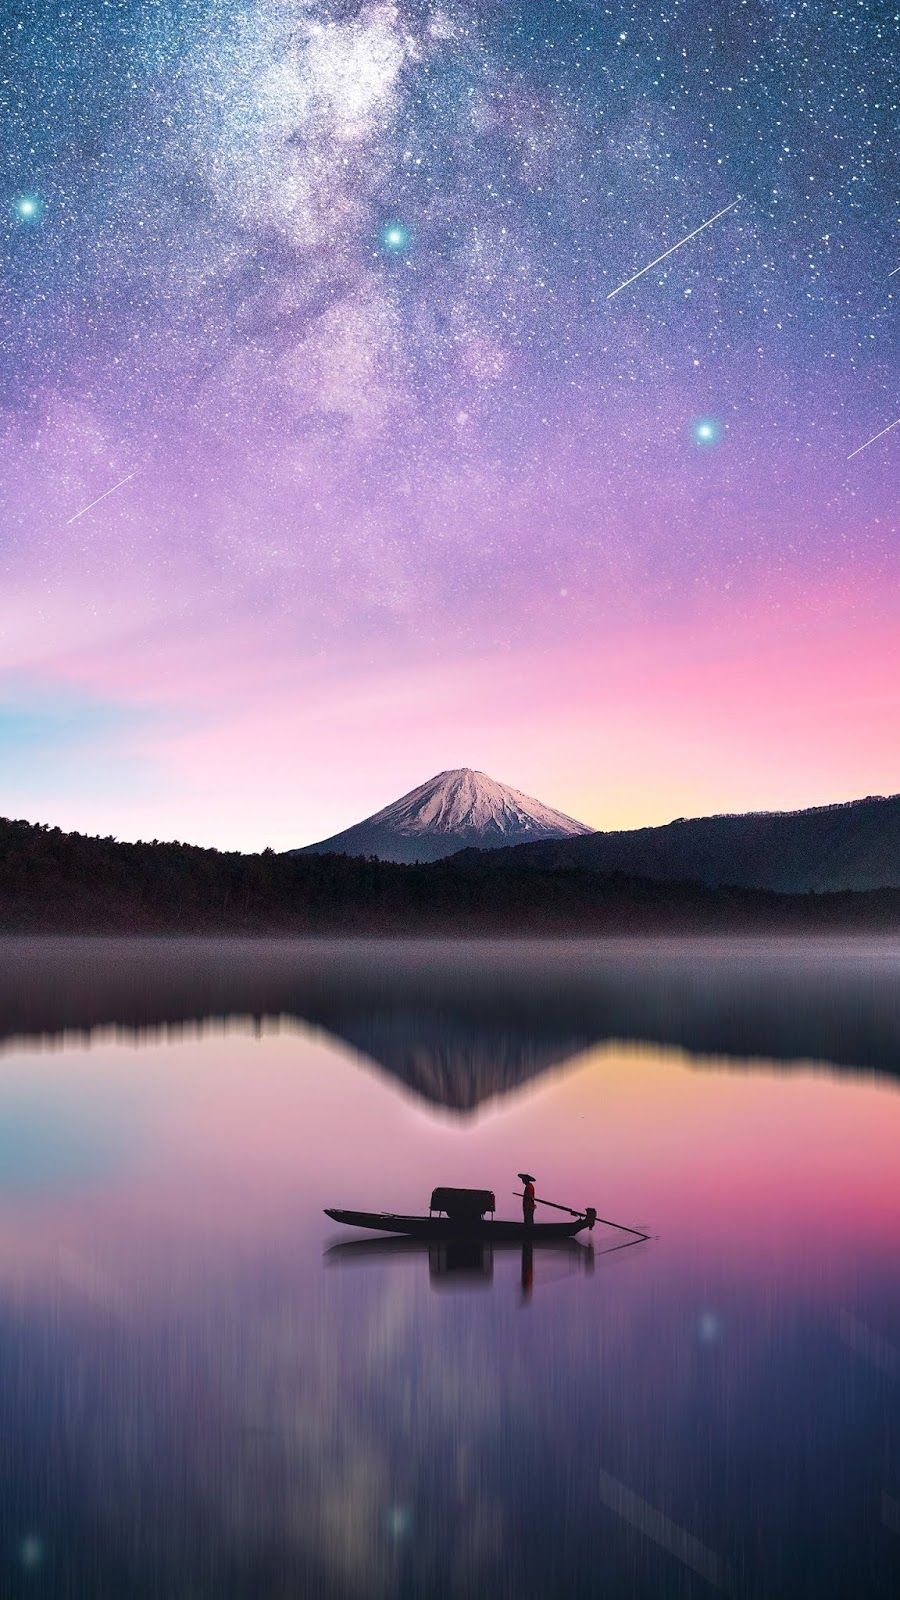 Milky way in mount Fuji wallpaper Scenery Nature wallpaper Nature 900x1600